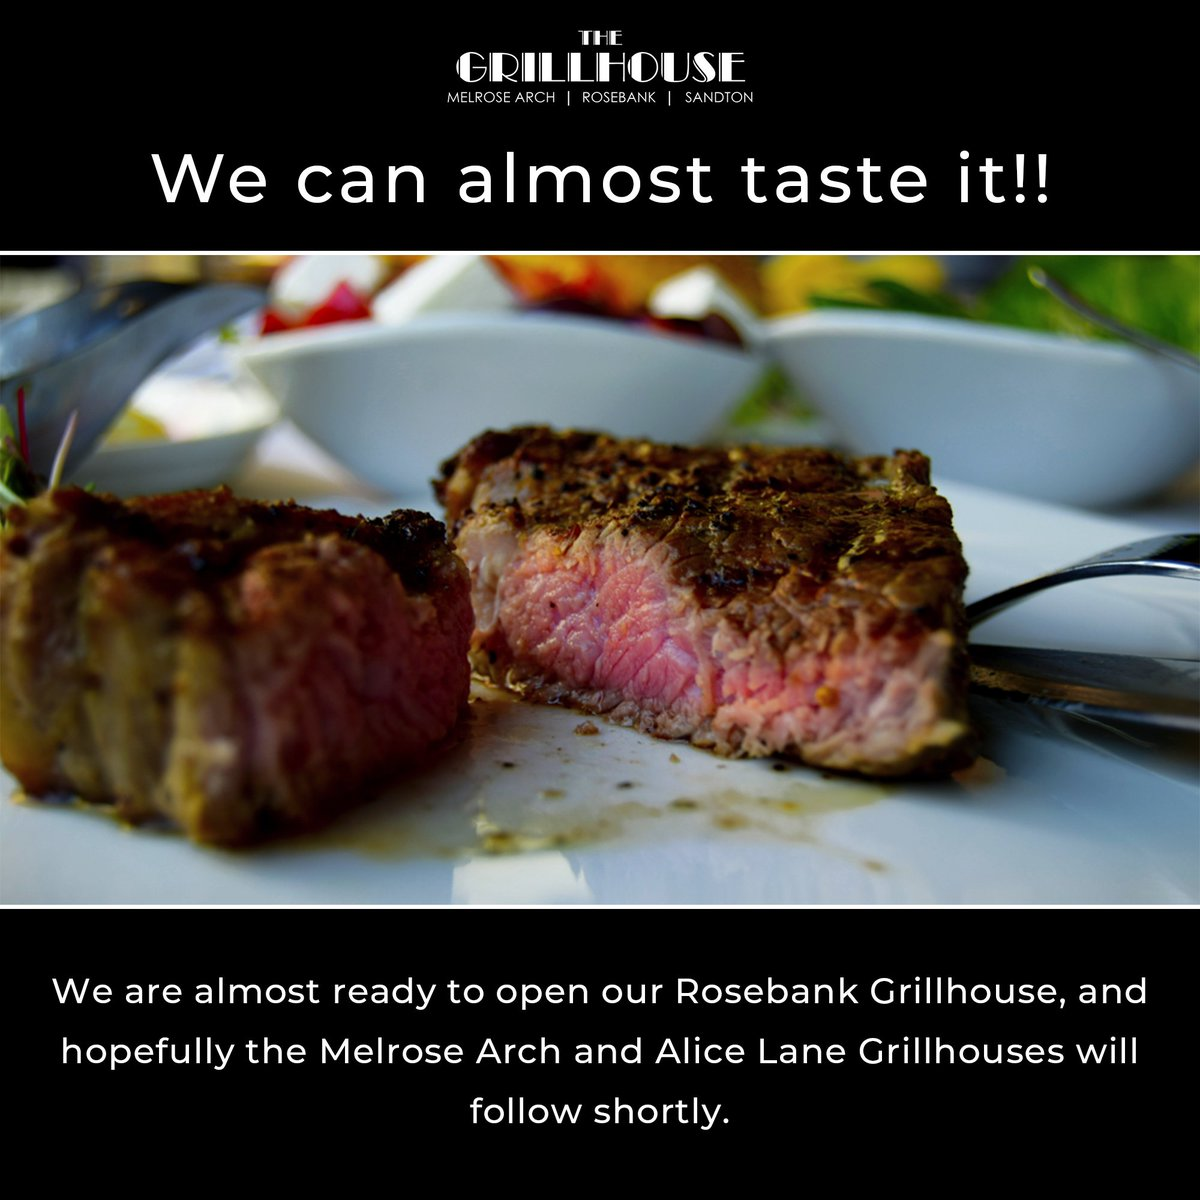 We can almost taste it!! We are almost ready to open our Rosebank Grillhouse, & hopefully the Melrose Arch & Alice Lane Grillhouses will follow shortly. Hopefully within a week, but keep an eye on our social media platforms #restaurant #food #foodporn #foodie #dinner #coranavirus https://t.co/DnEragkV4J